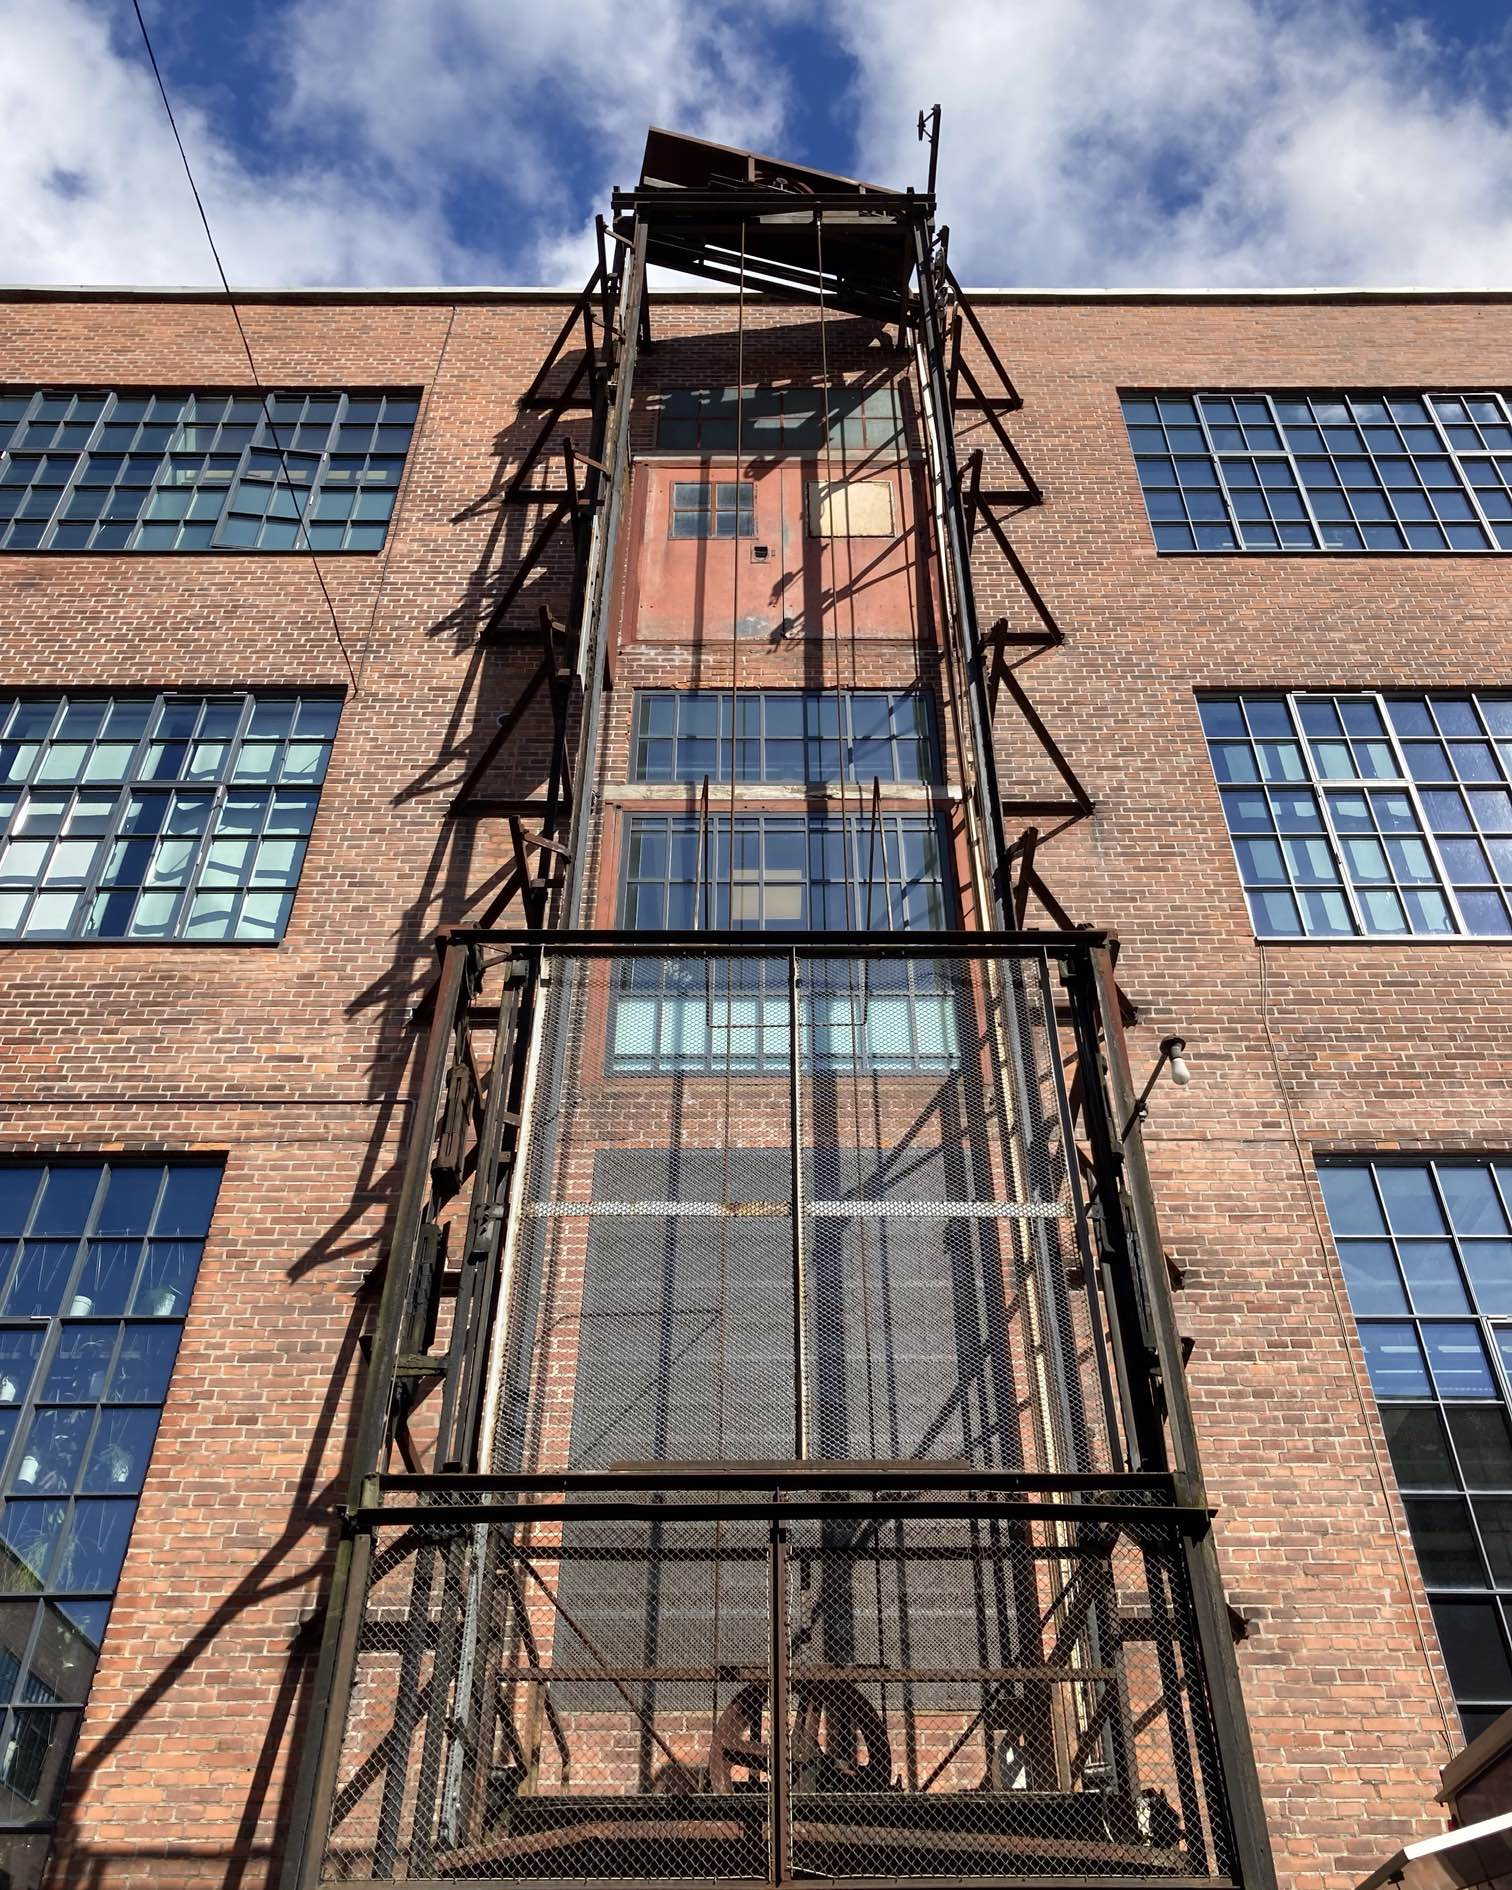 A seldom seen external elevator on the outside of the old factory building that now houses the Bjarke Ingels Group offices. Afternoon sun. A few moments of blue sky and patchy clouds on what was an otherwise rainy day.